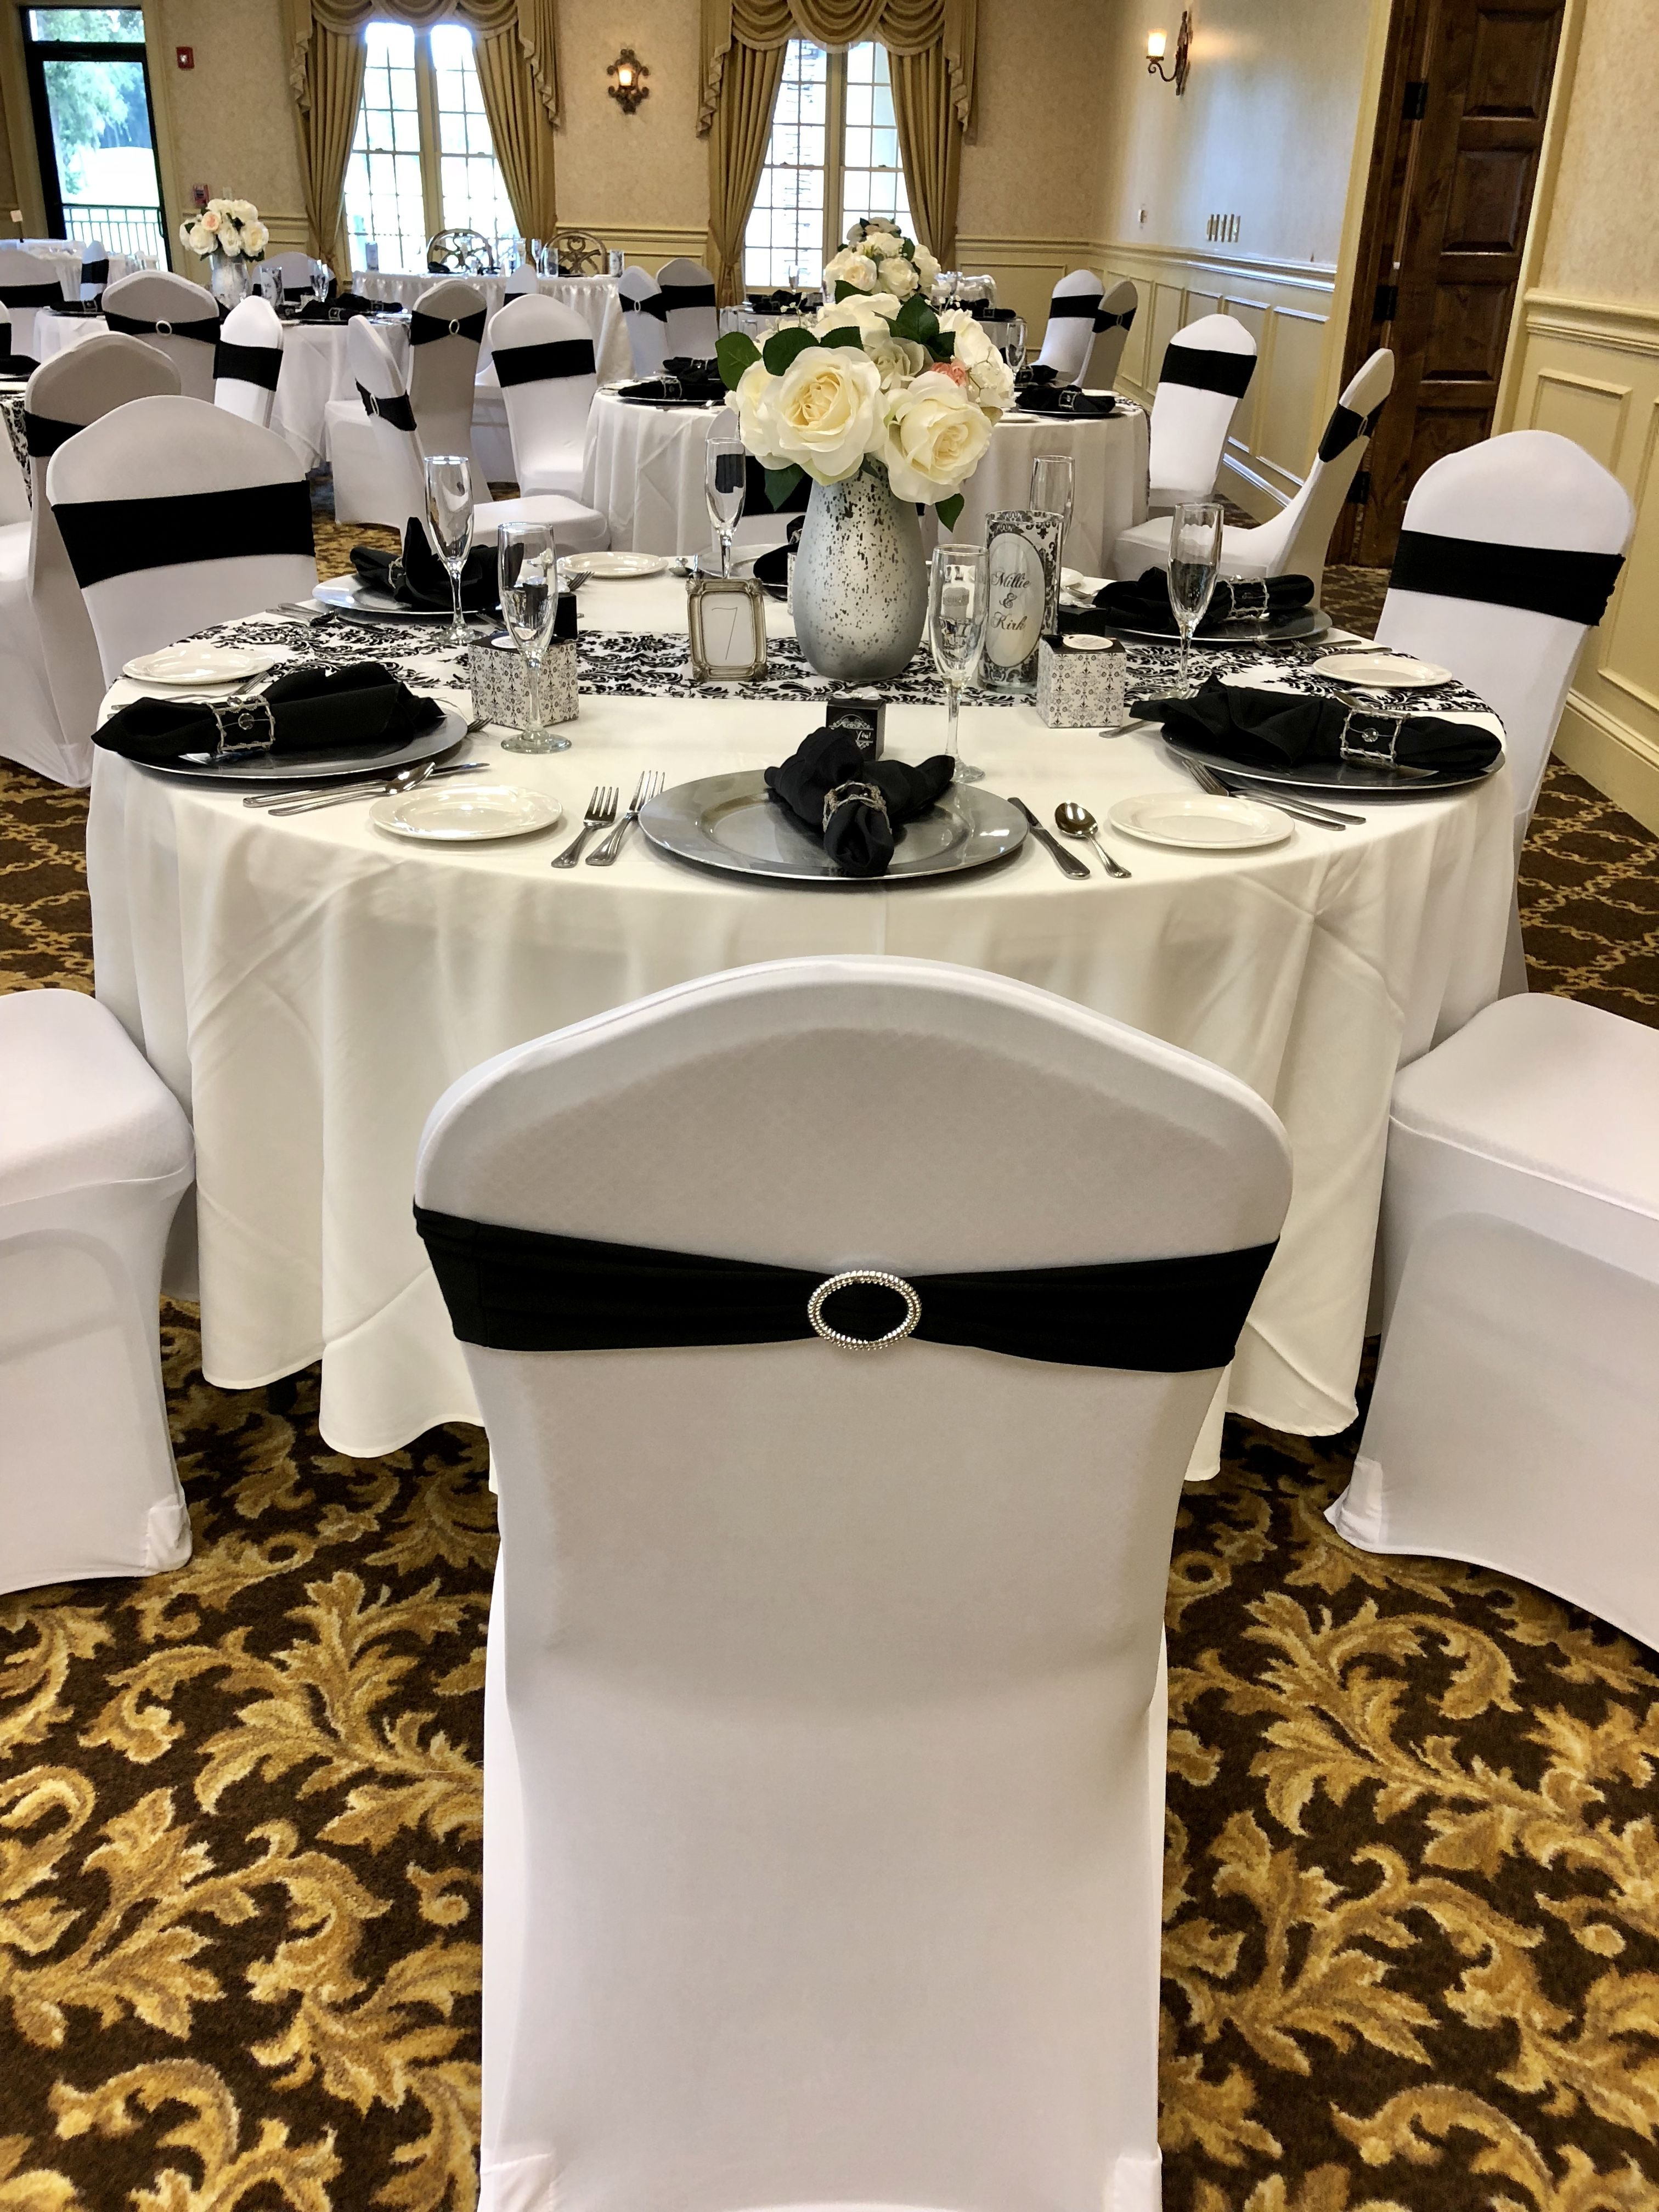 Strange Black White Damask Runner With White Tablecloths White Beatyapartments Chair Design Images Beatyapartmentscom